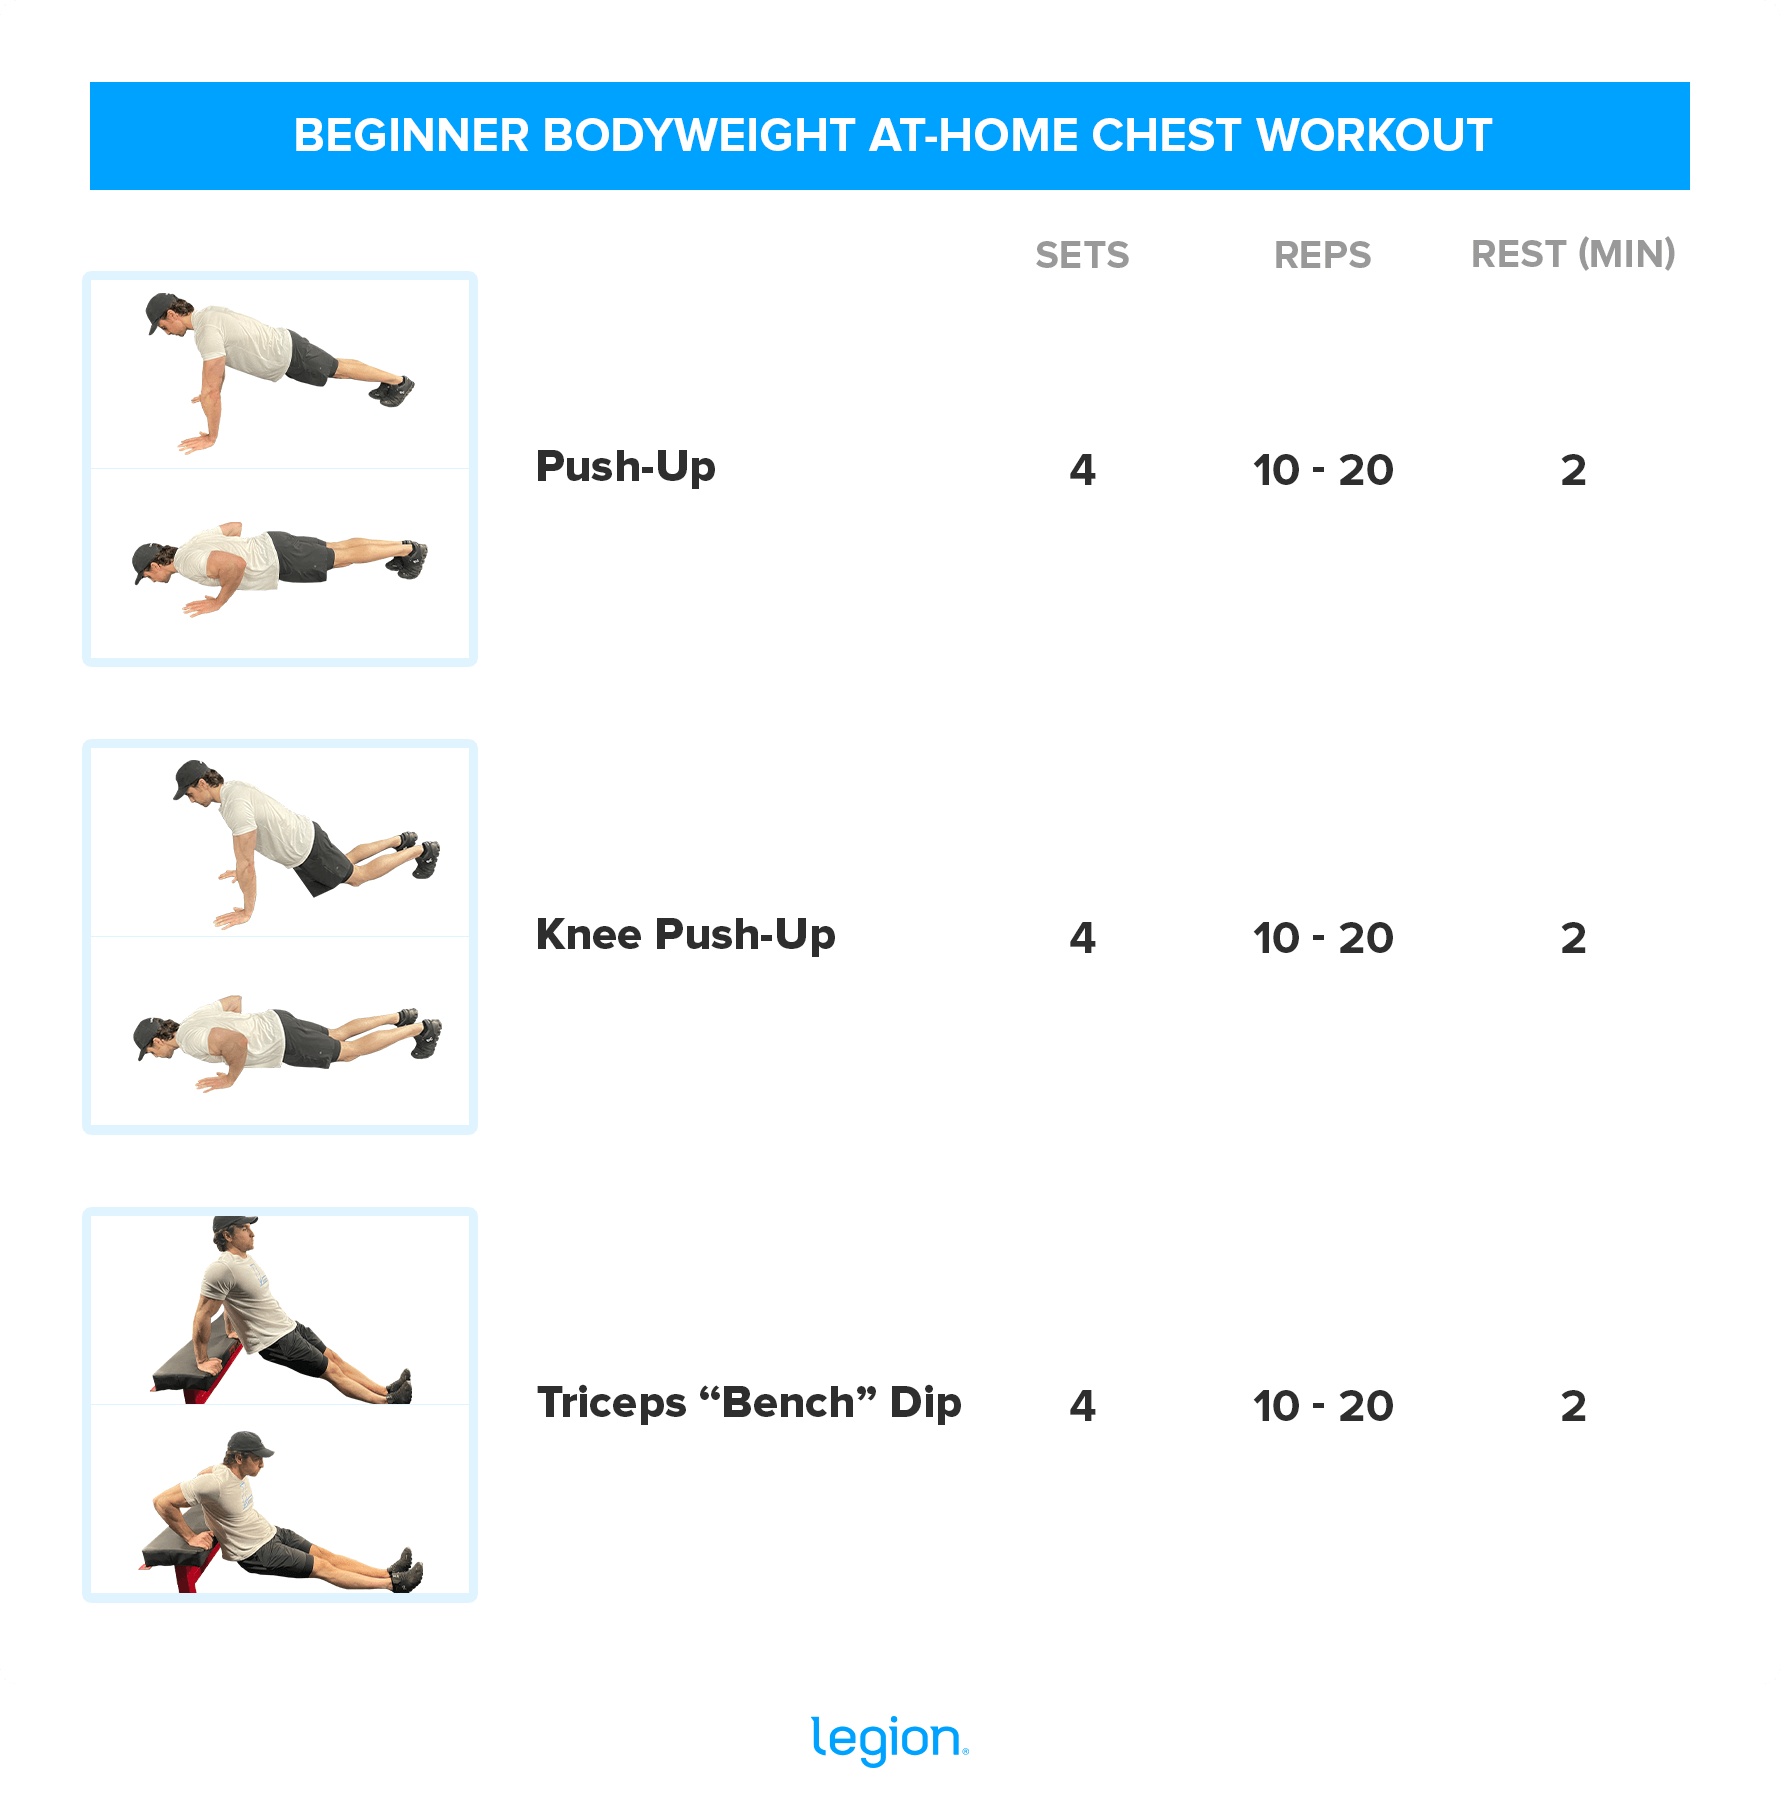 BEGINNER BODYWEIGHT AT-HOME CHEST WORKOUT